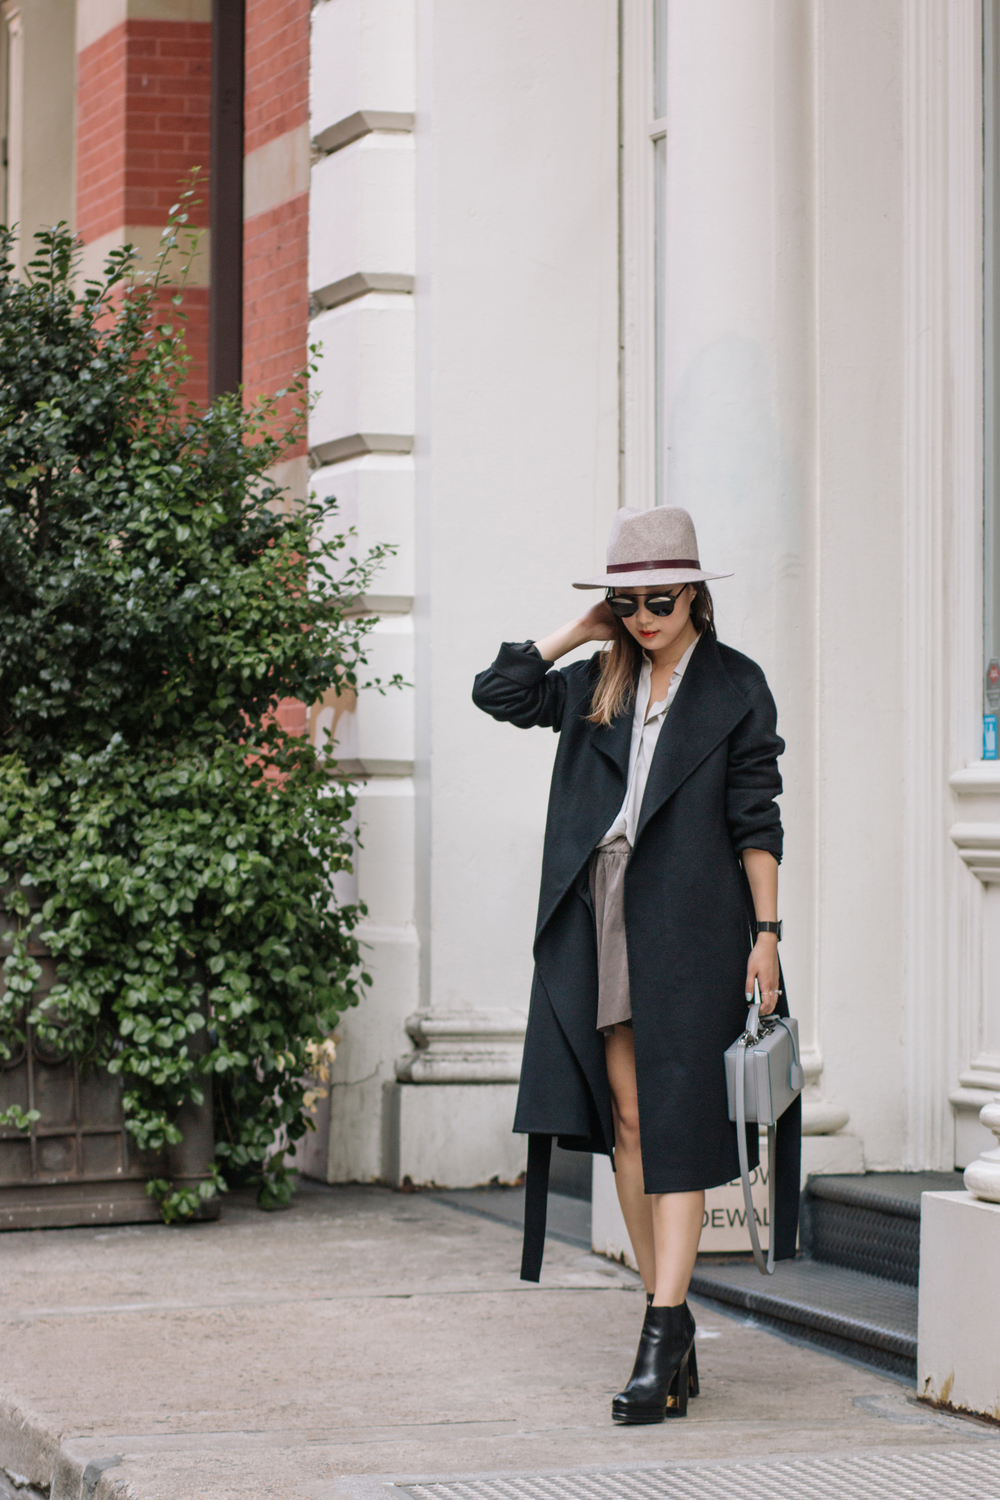 Kuho Coat, Everlane Shirt, Aritzia Skirt, Chanel Shoes, Janessa Leone Hat, Mark Cross Bag, Dior Sunglasses, Larsson & Jennings Watch